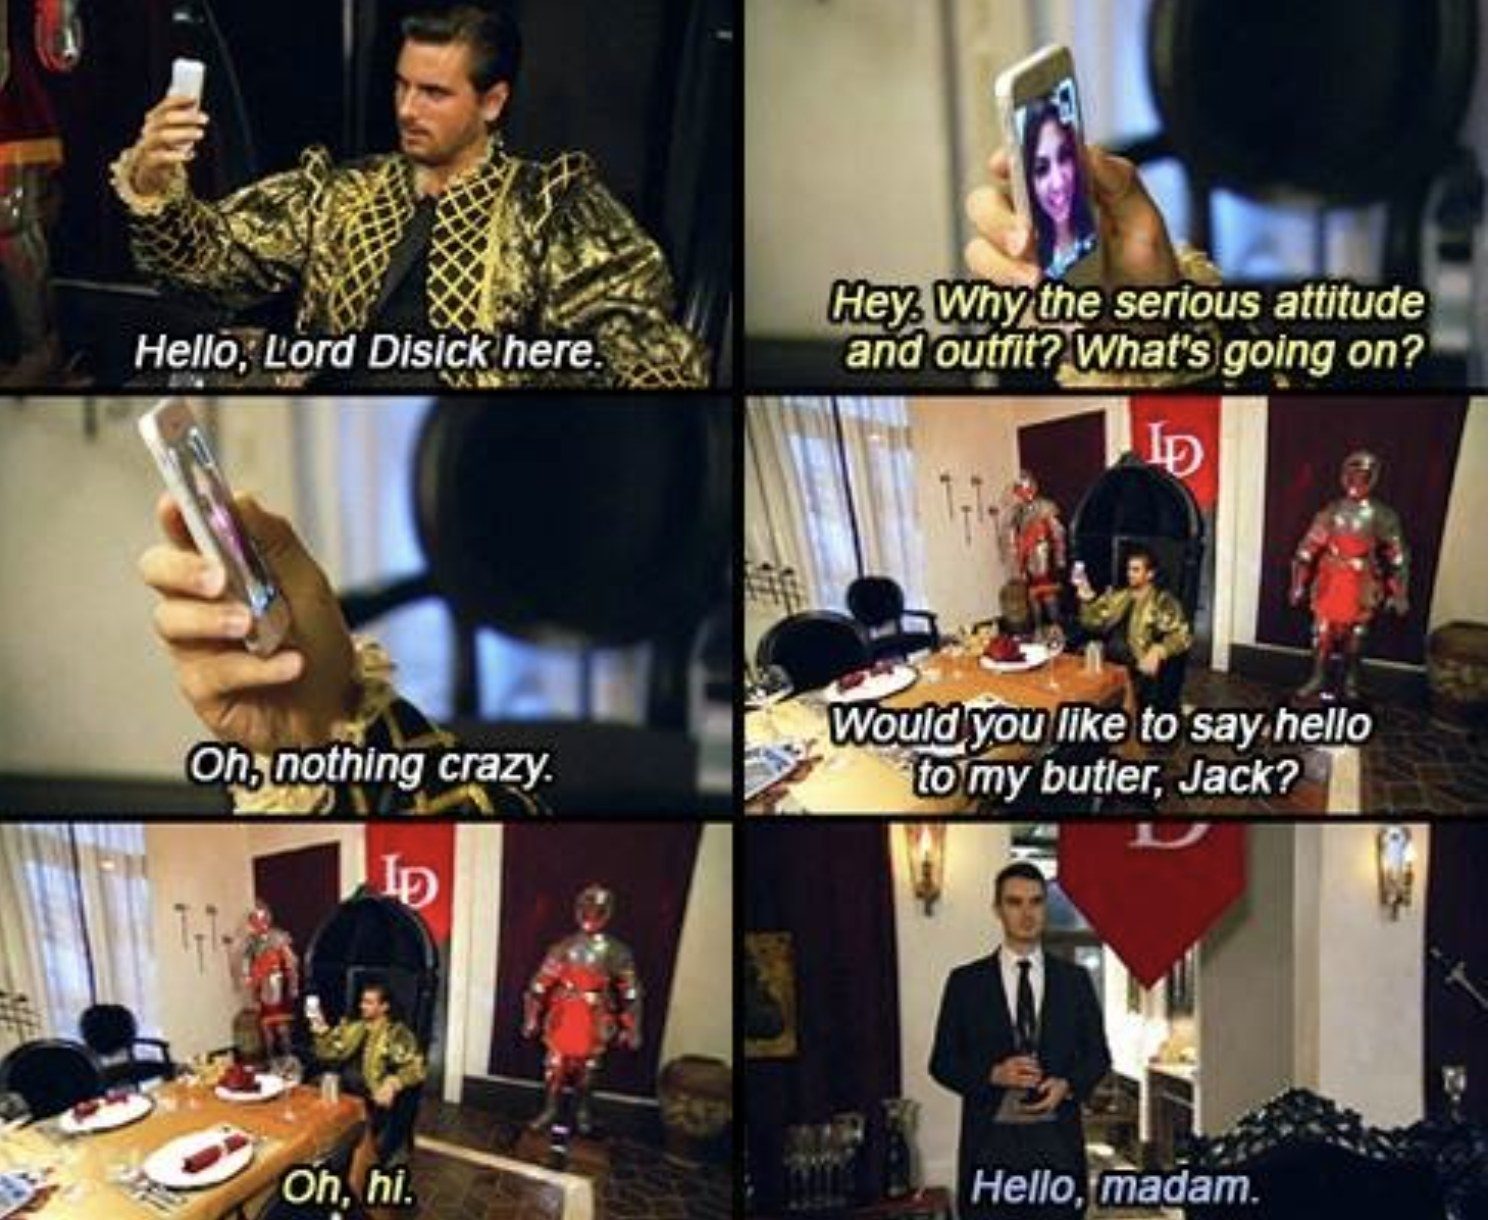 """Six images showing """"Lord Disick,"""" with him asking Kourtney if she wants to say hello to his butler"""